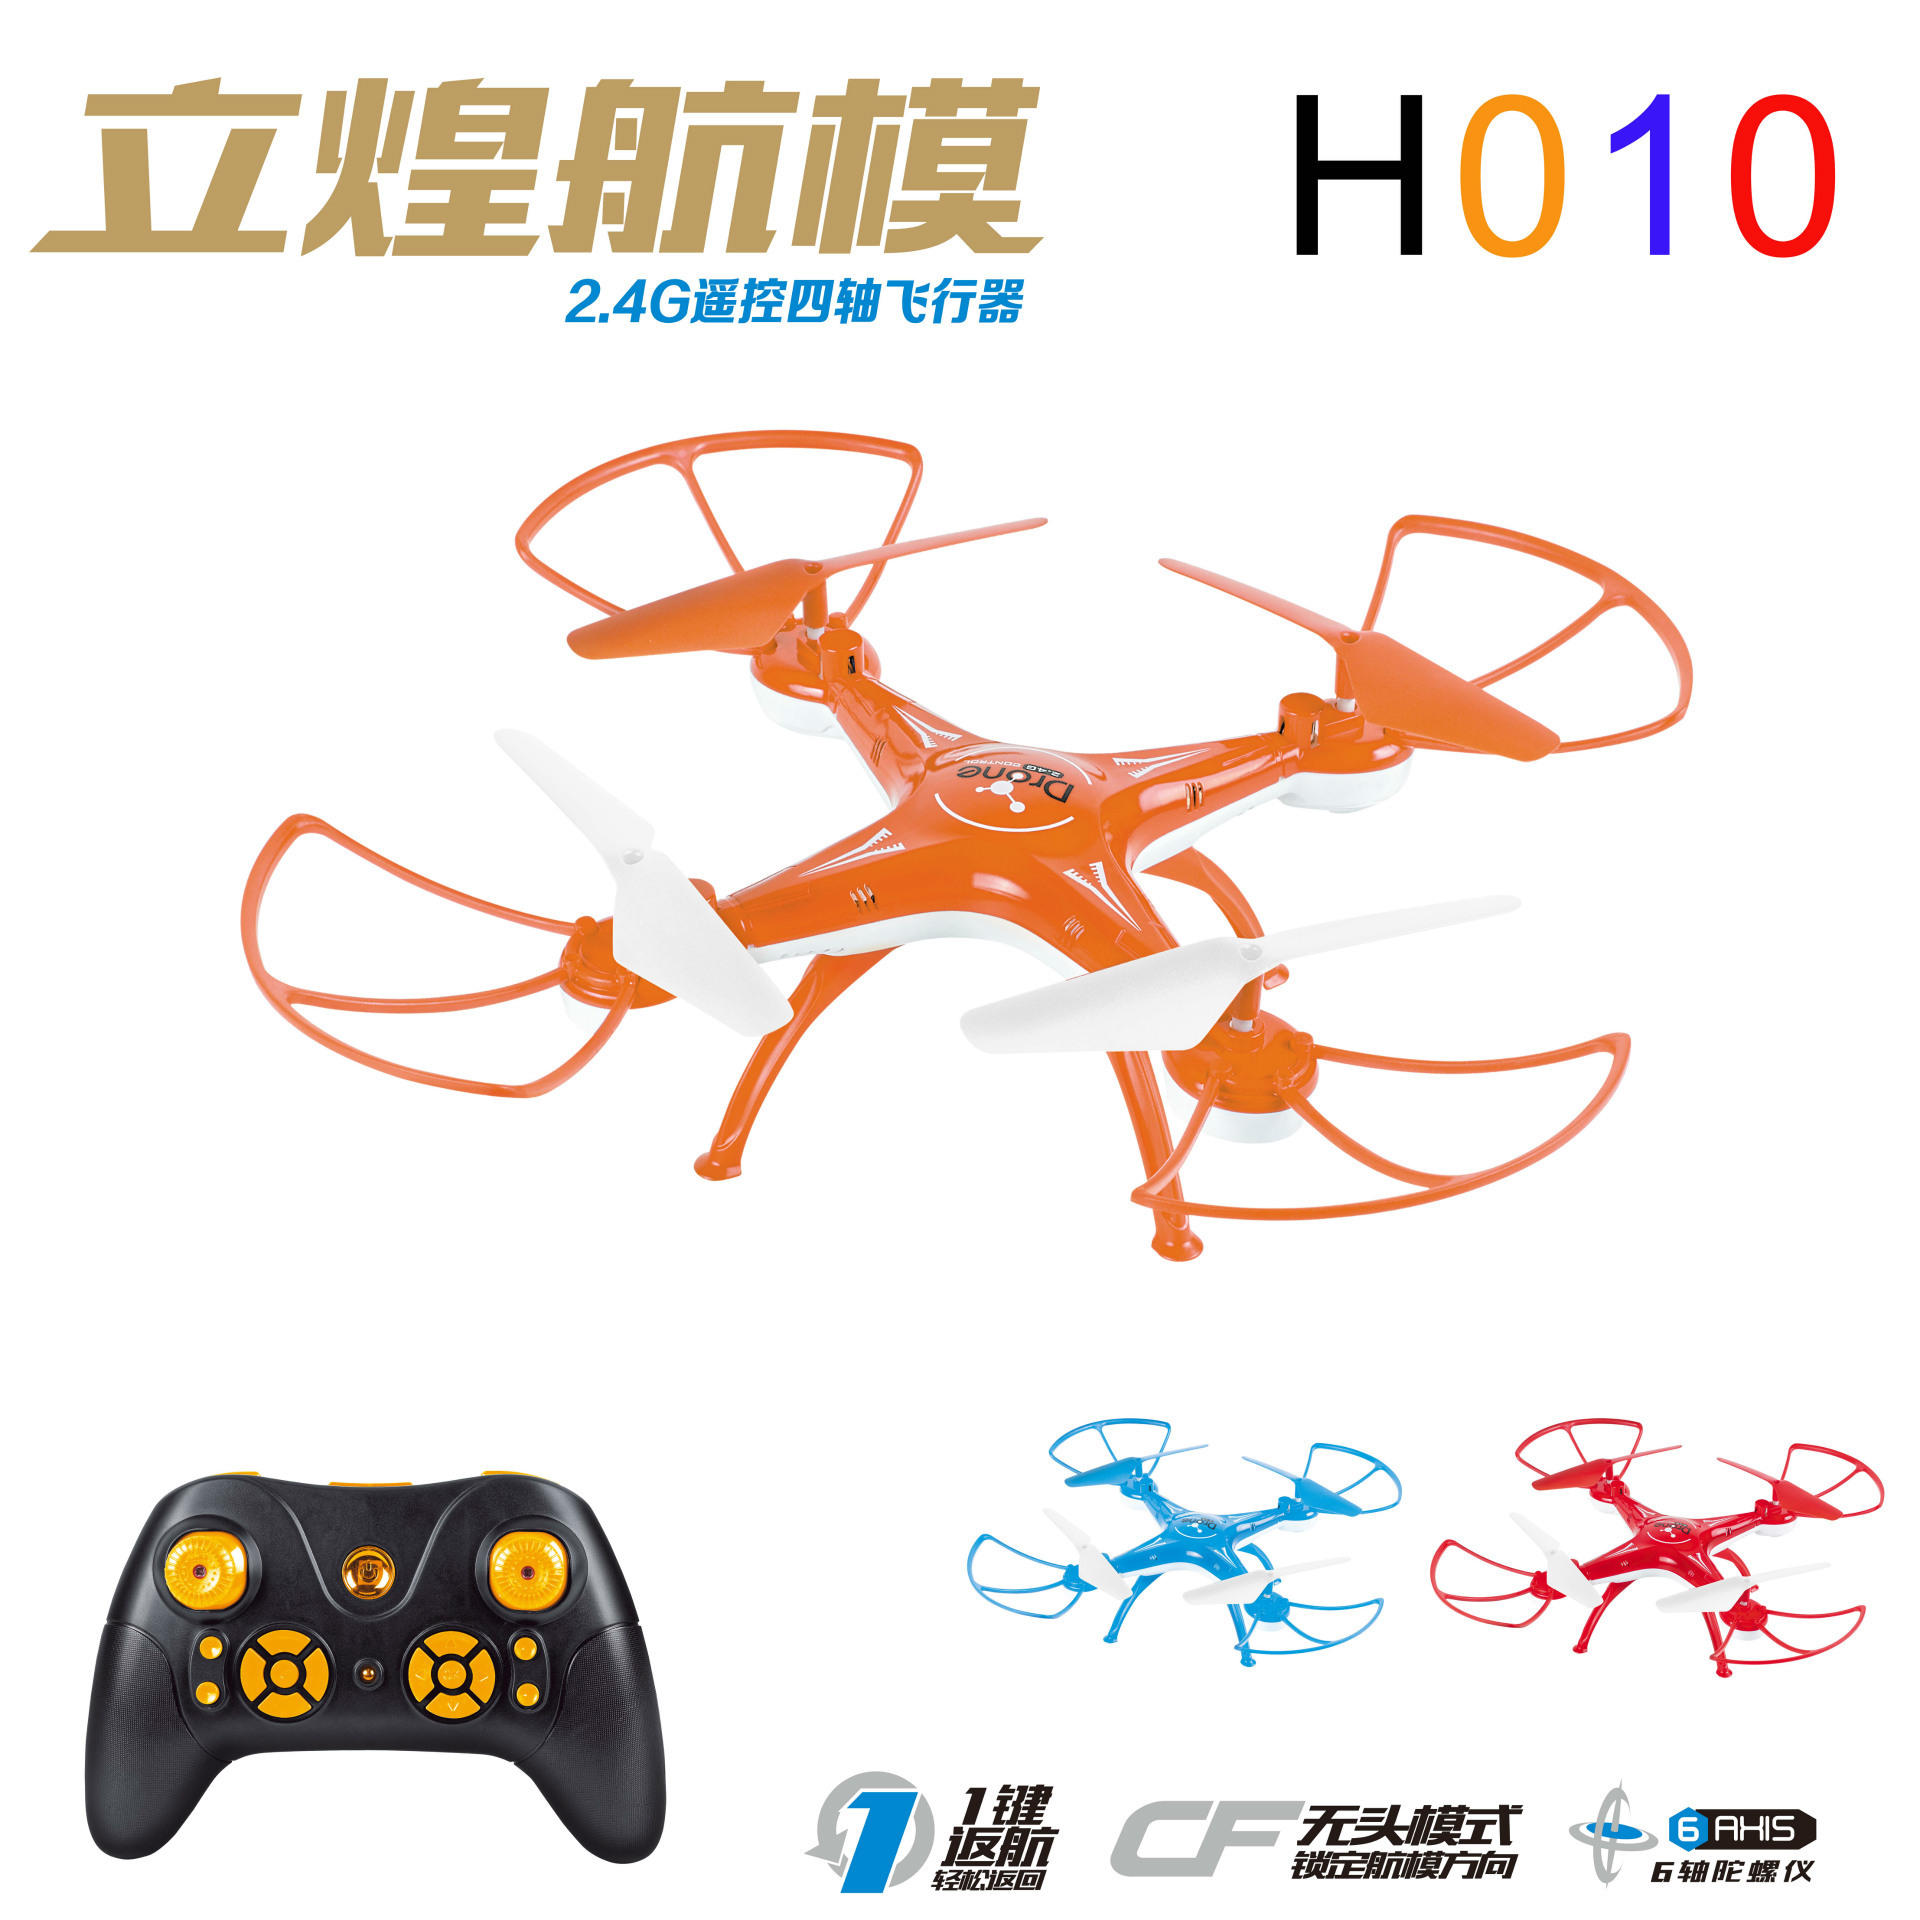 Li Huang H010 Quadcopter 2.4G 6-Axis Gyroscope Four-Rotor Unmanned Aerial Vehicle Remote Control Toy